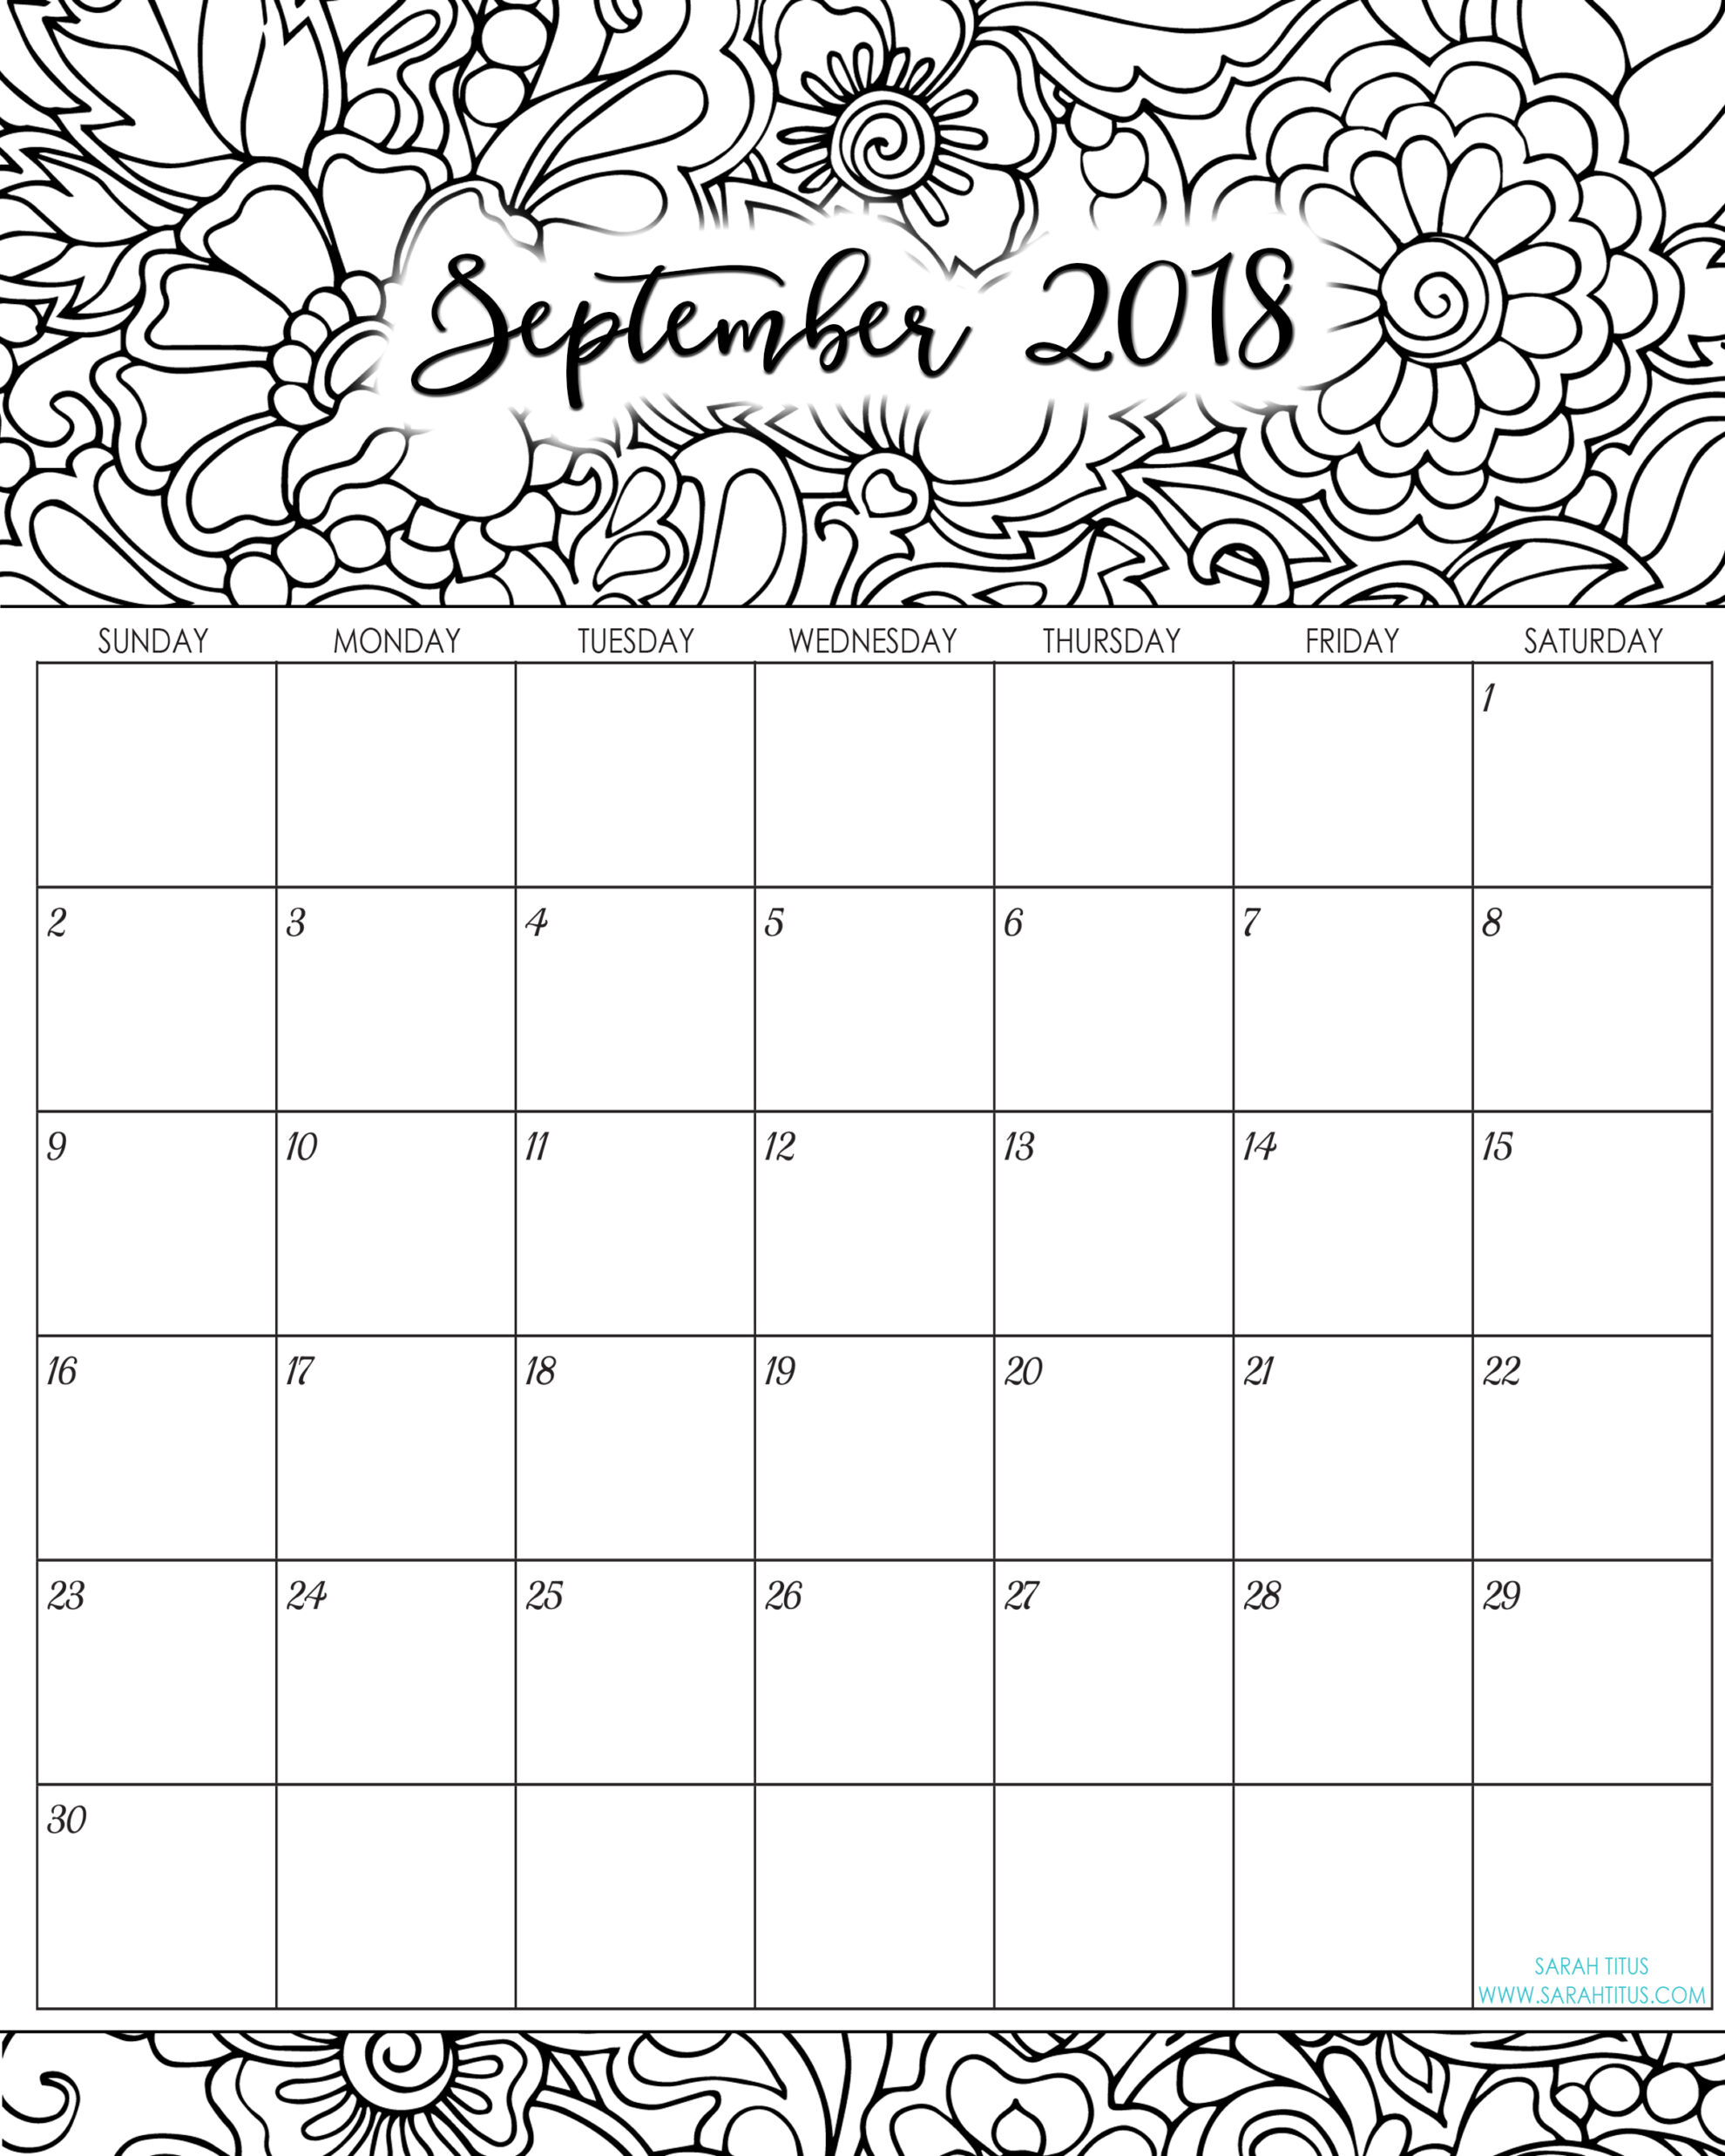 2018 Monthly Coloring Calendars Printables  Sarah Titus regarding Sarah Titus Calendar